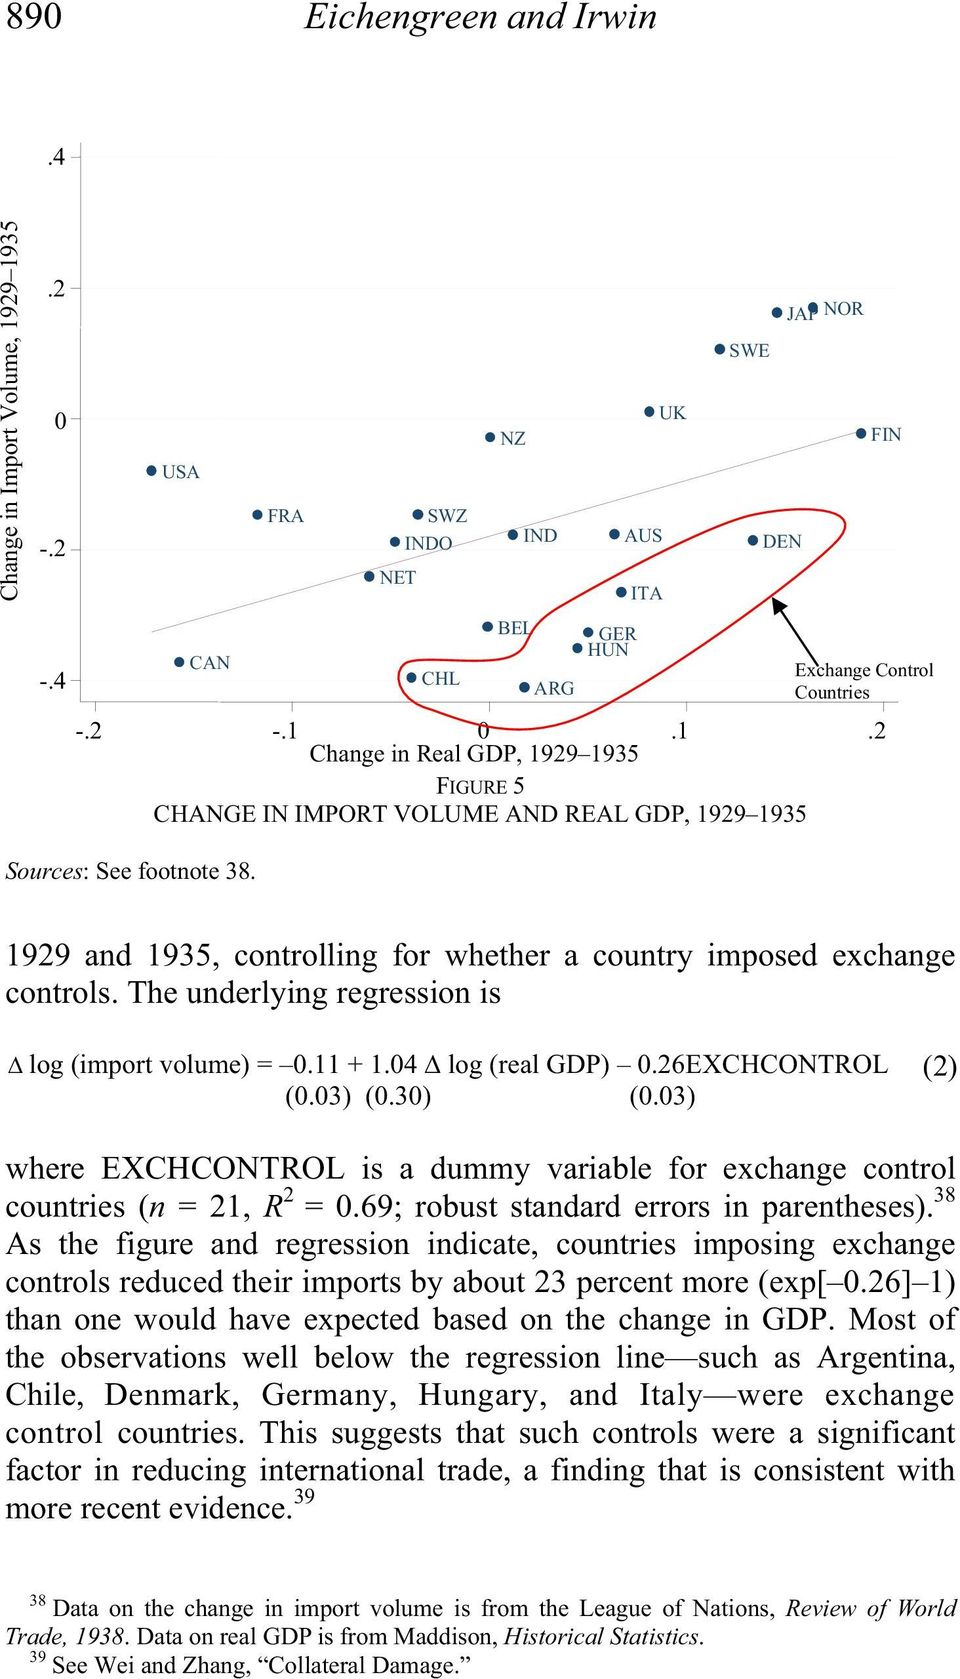 1929 and 1935, controlling for whether a country imposed exchange controls. The underlying regression is log (import volume) = 0.11 + 1.04 log (real GDP) 0.26EXCHCONTROL (0.03) (0.30) (0.